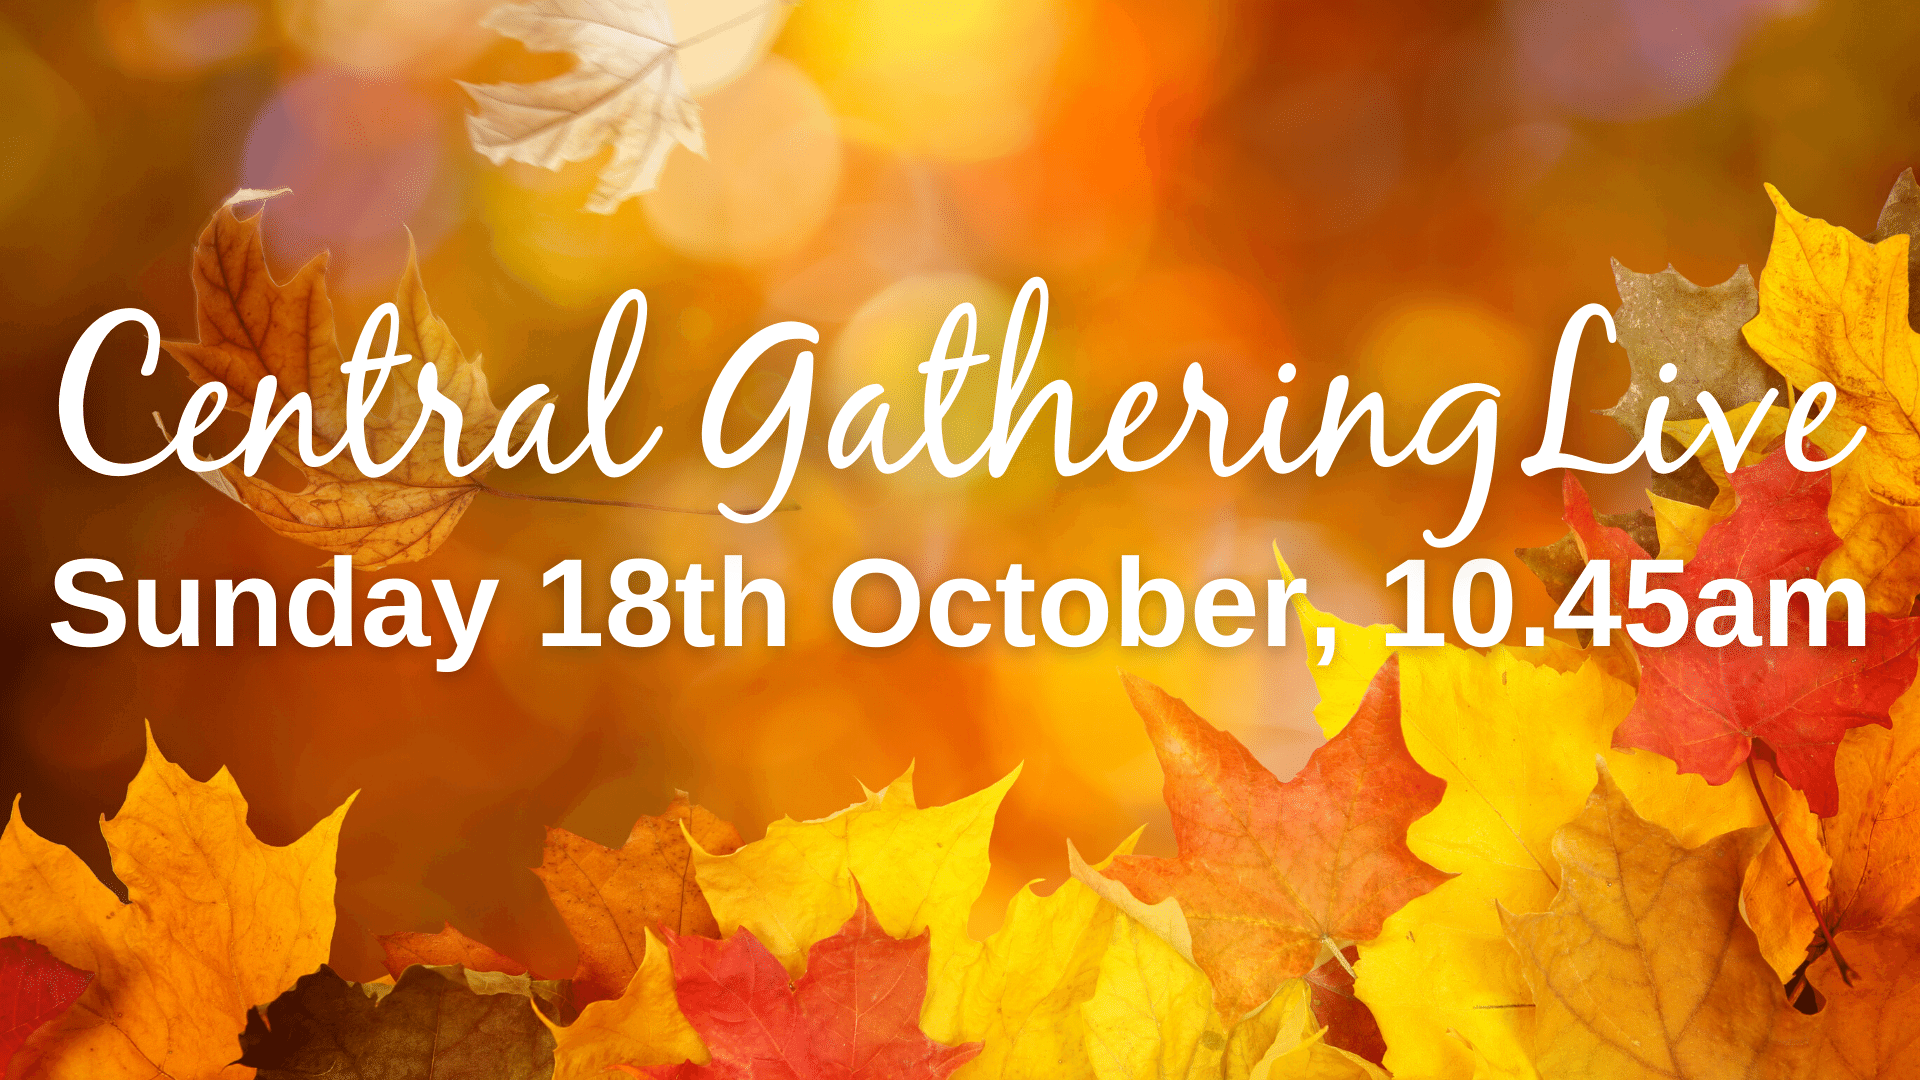 Central Gathering Live (thumbnail for schedule)